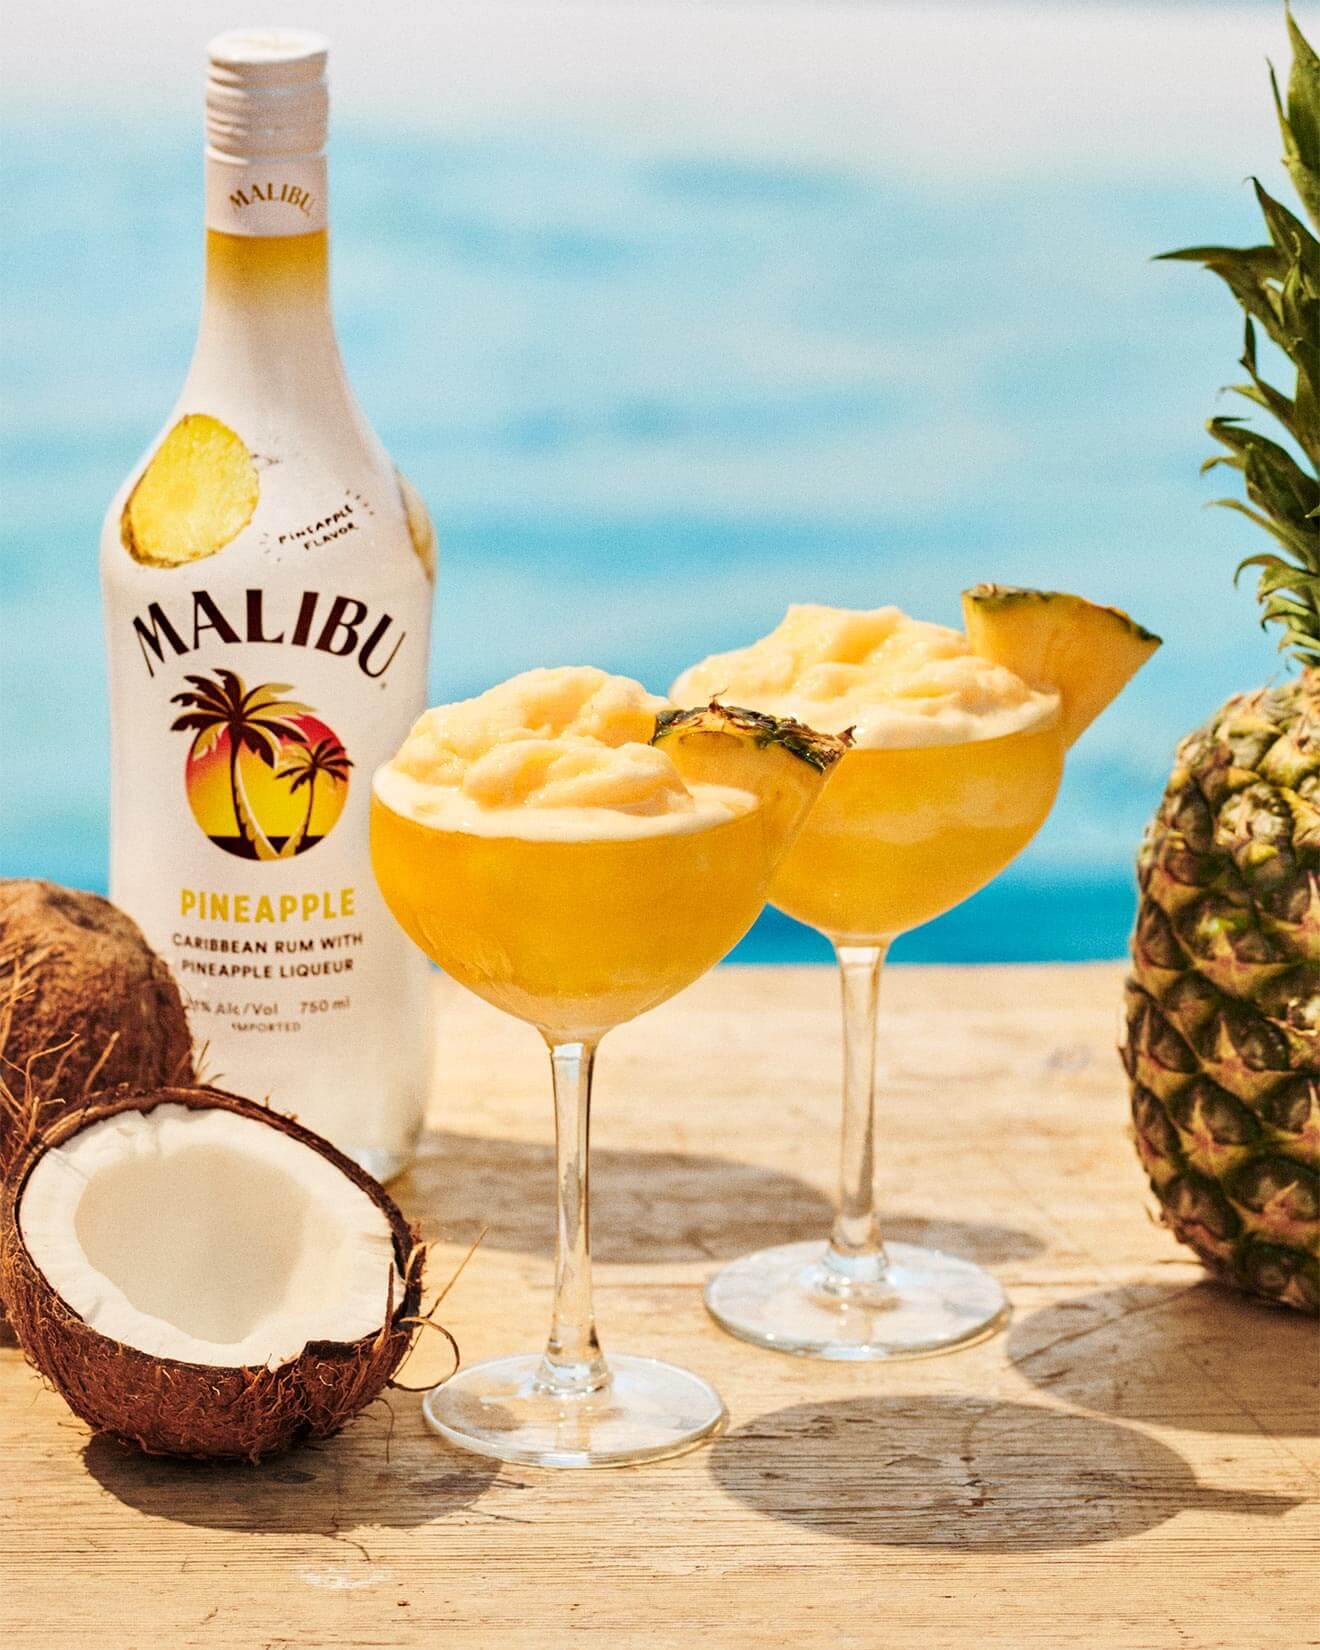 Malibu Pineapple Frozen Daiquiri, frozen cocktail with bottle, poolside table